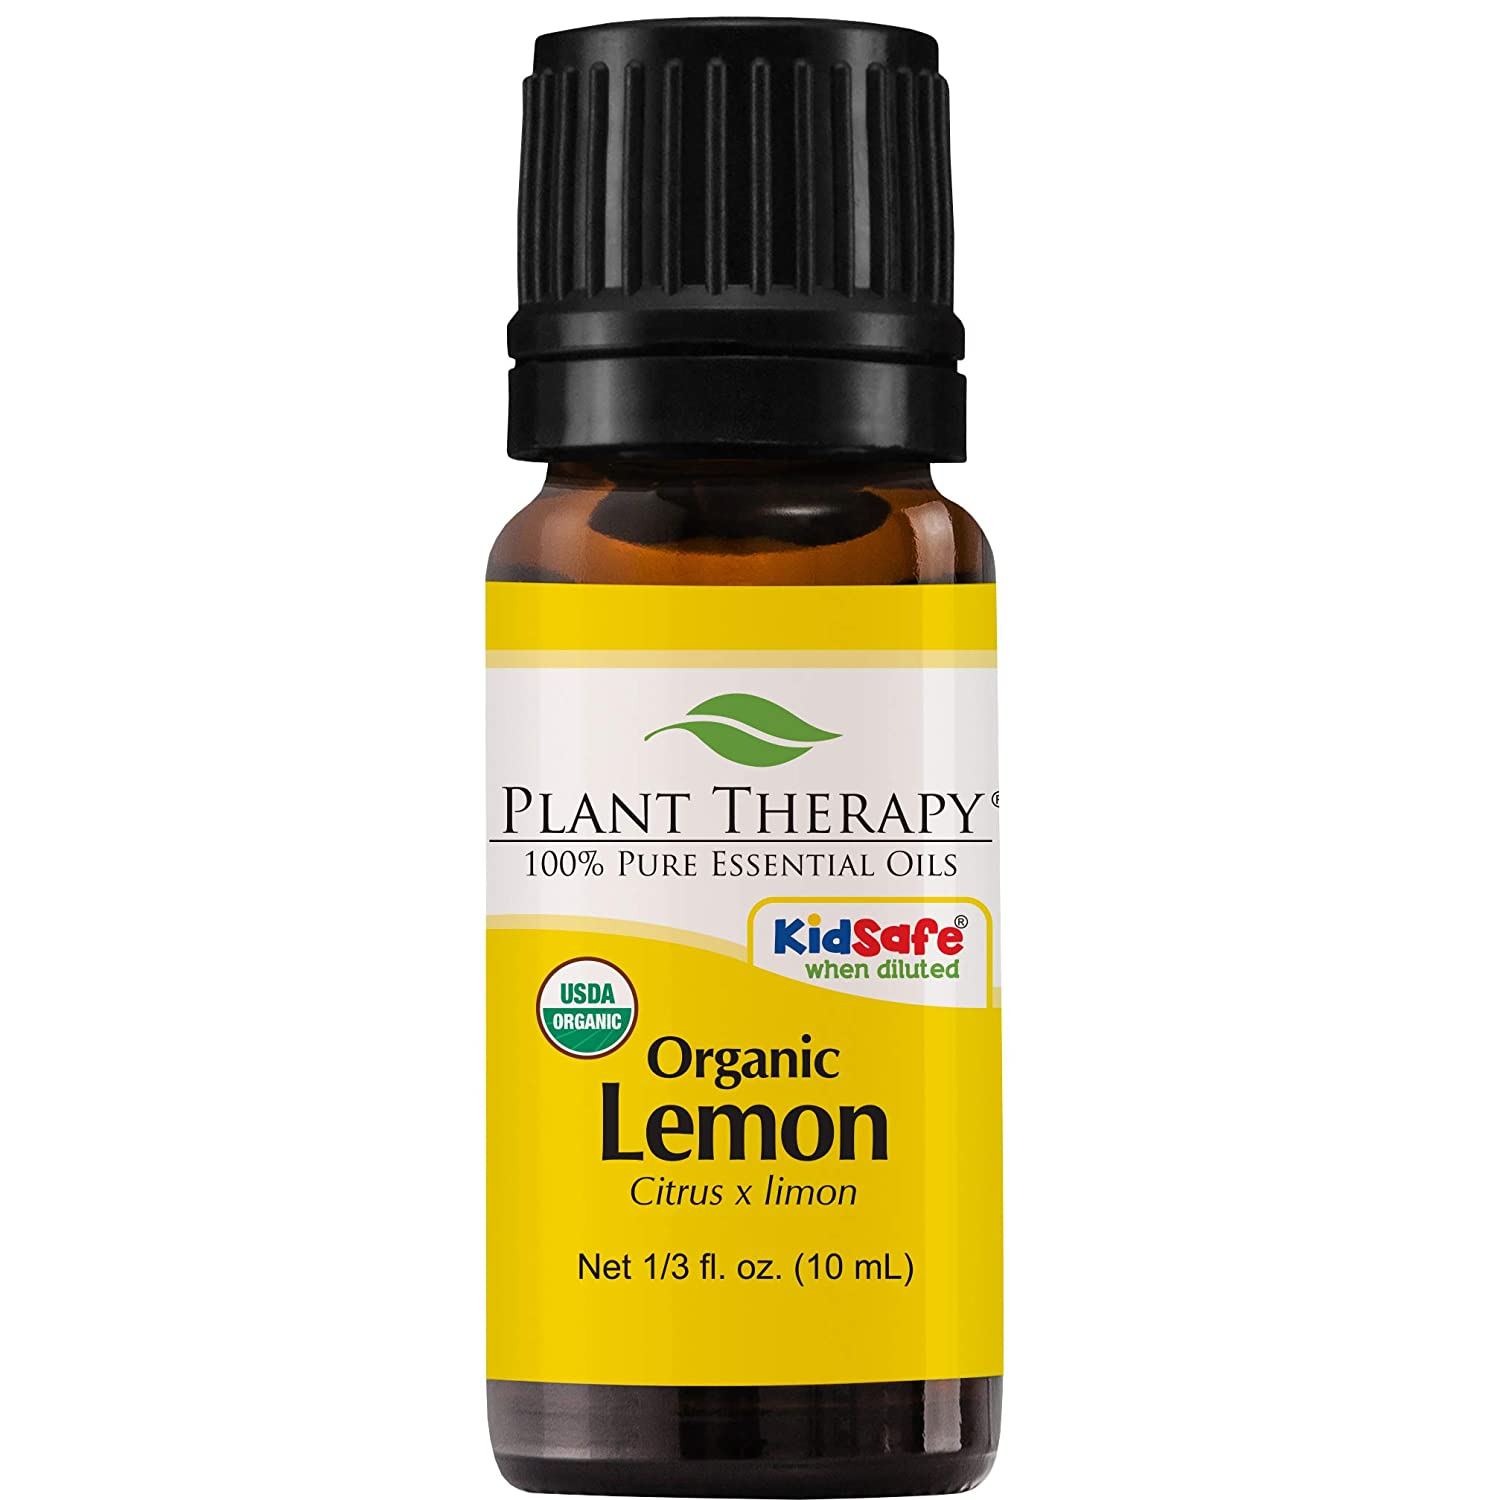 Plant Therapy Lemon Organic Essential Oil 100% Pure, USDA Certified Organic, Undiluted, Natural Aromatherapy, Therapeutic Grade 10 mL (1/3 oz)